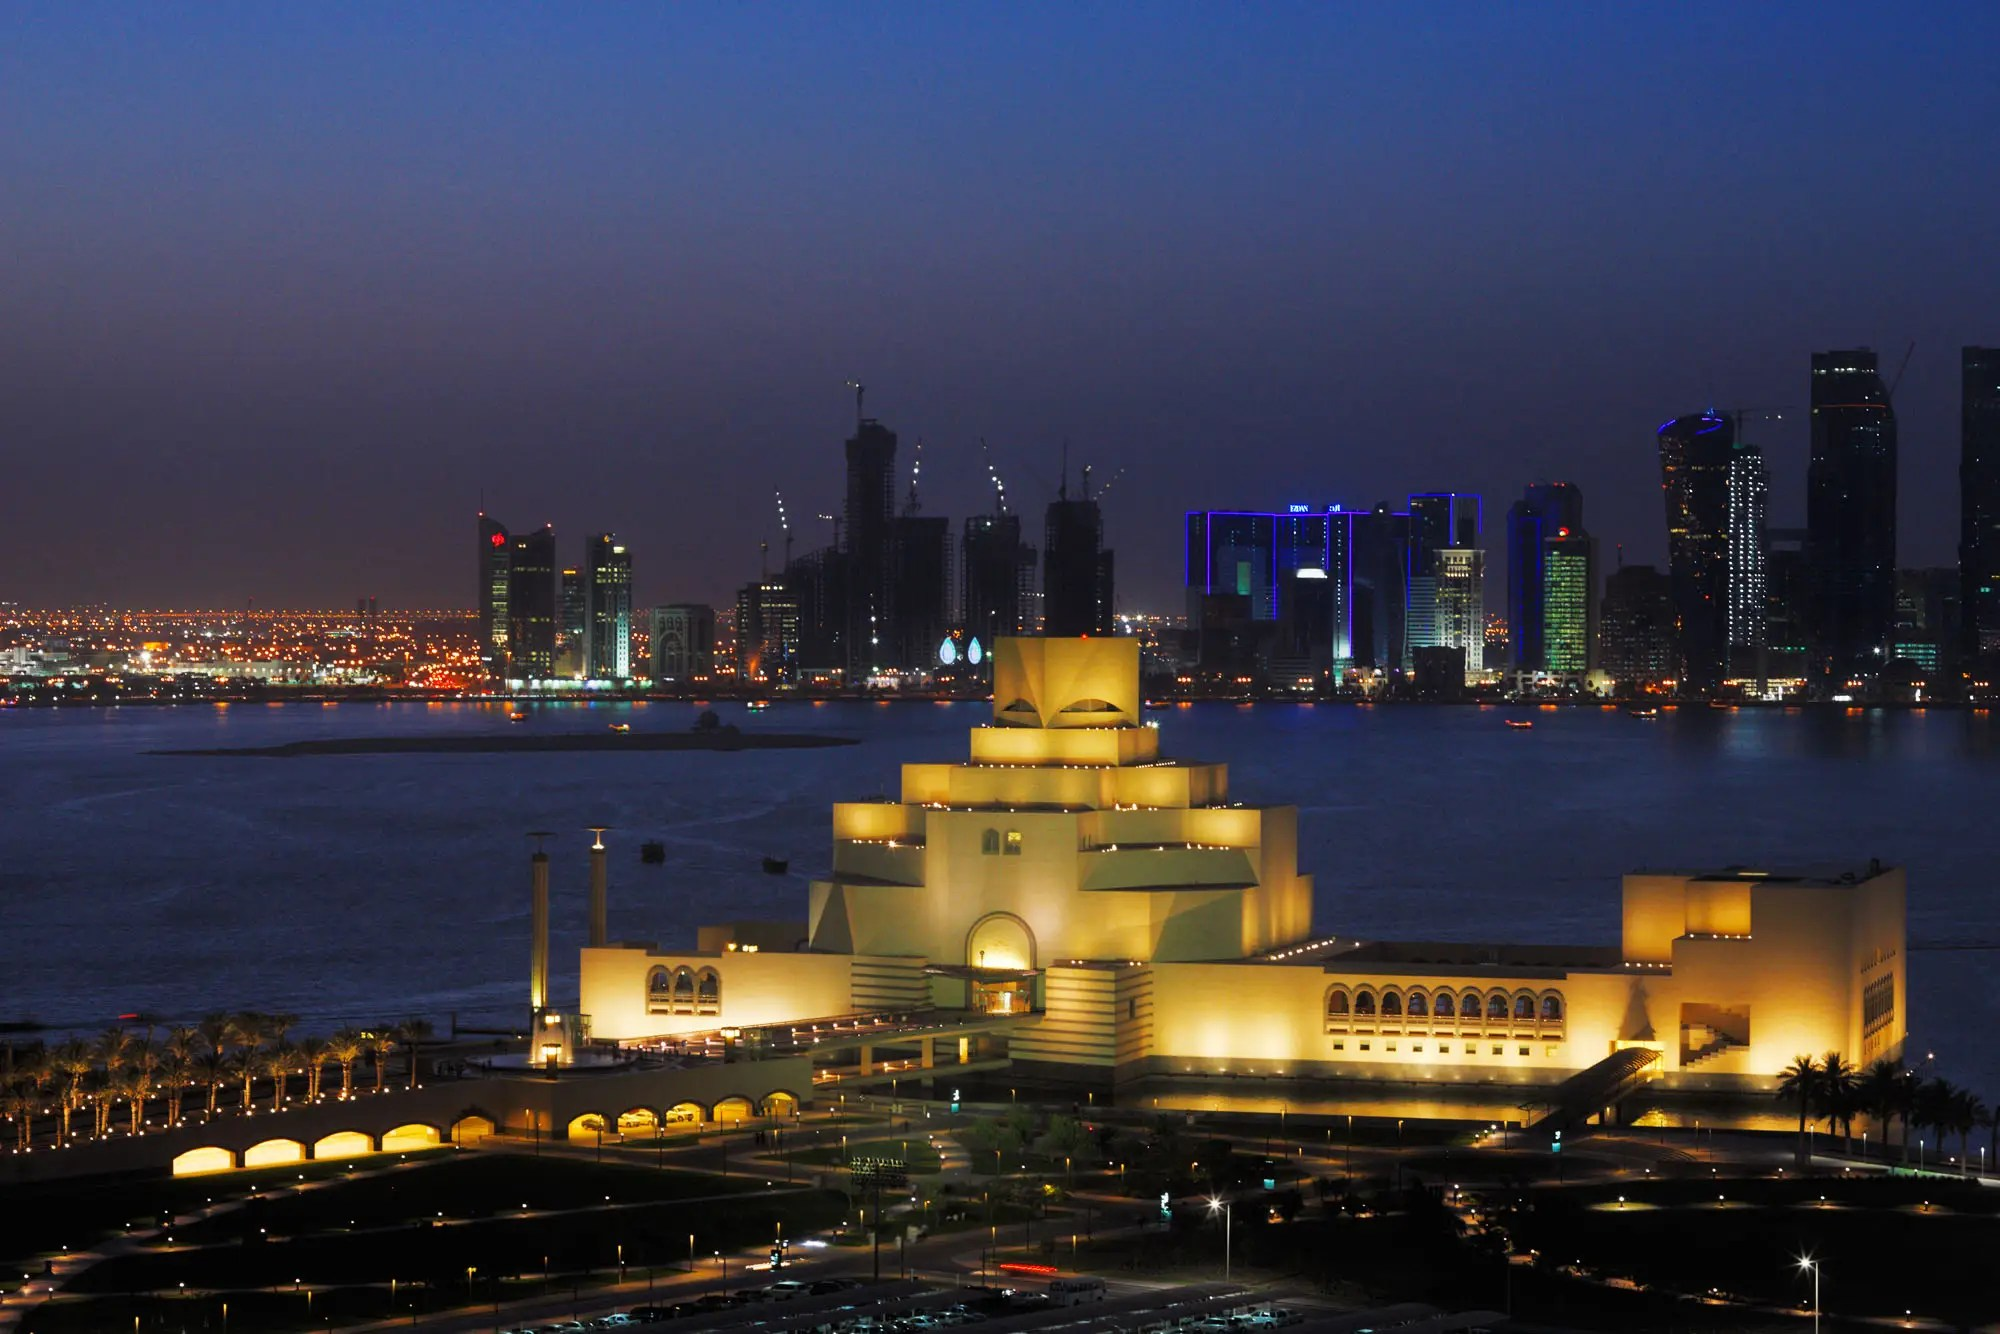 NOW: Today, Doha is internationally known for its latest museum, the Qatar Museum of Islamic Art. Set against the skyline and lit up at night, the museum houses the city's collection of manuscripts, textiles, and ceramics.